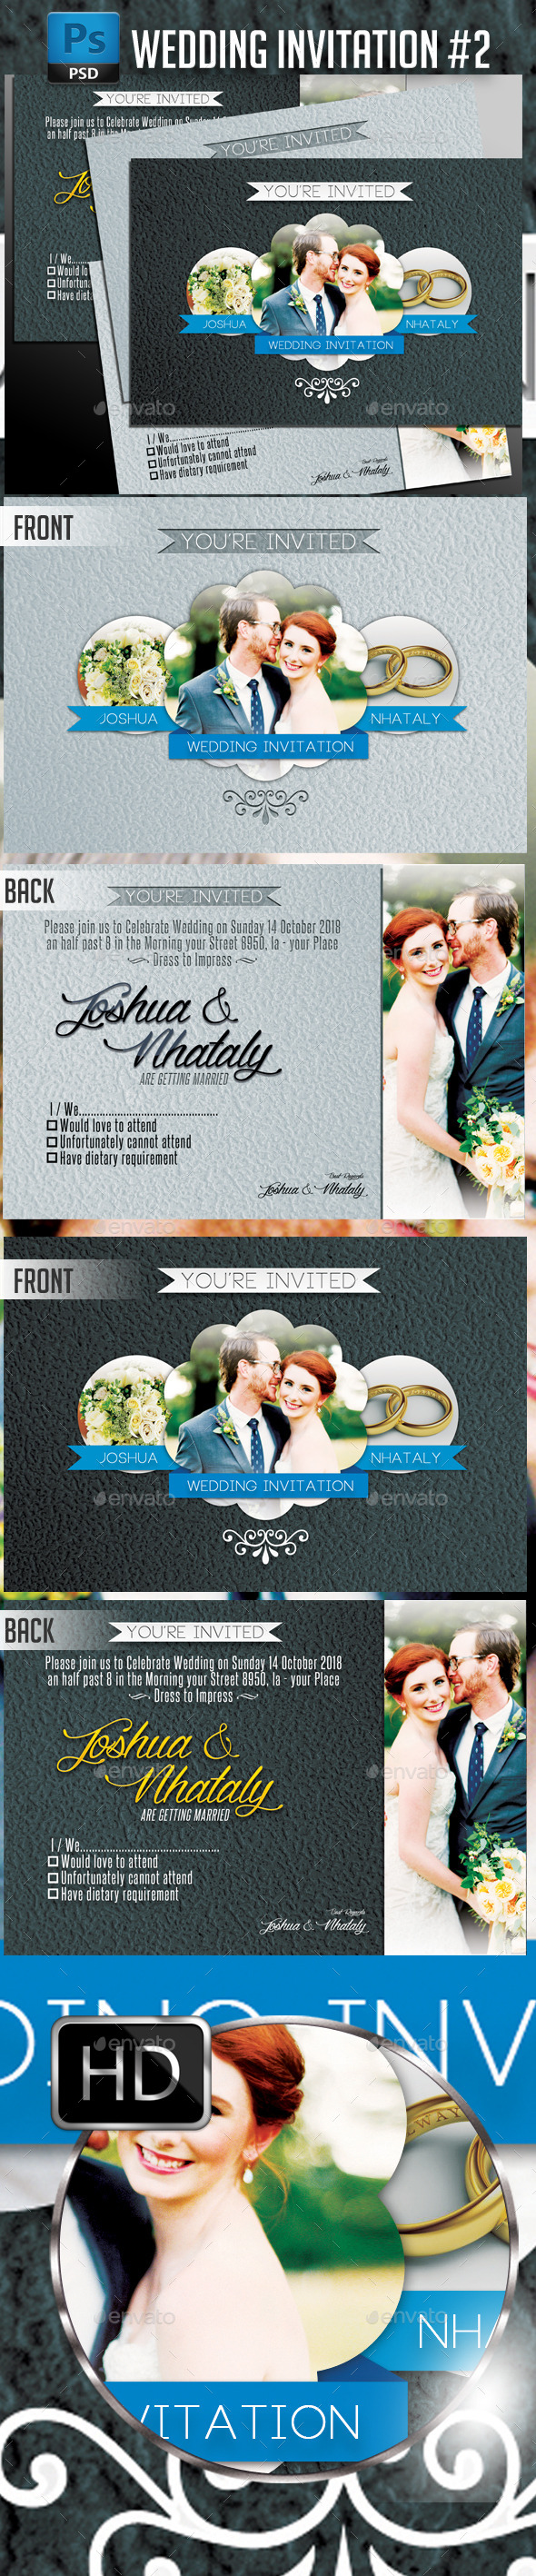 Wedding Invitation #2 - Horizontal